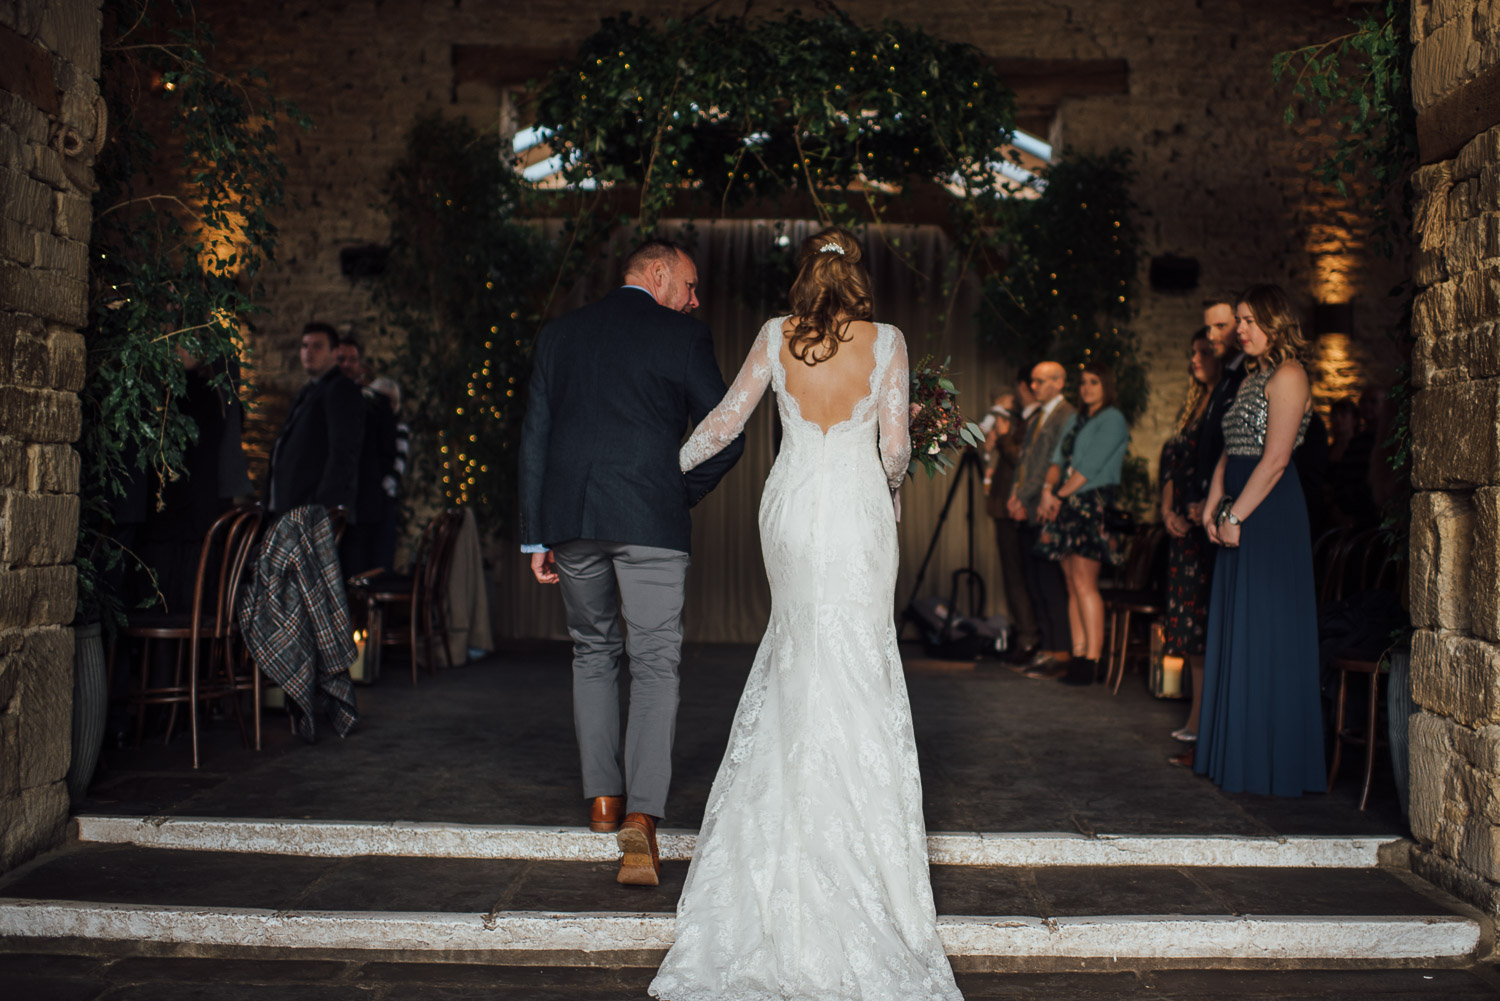 bridal entrance to cripps barn by creative and alternative london wedding photographer the shannons photography